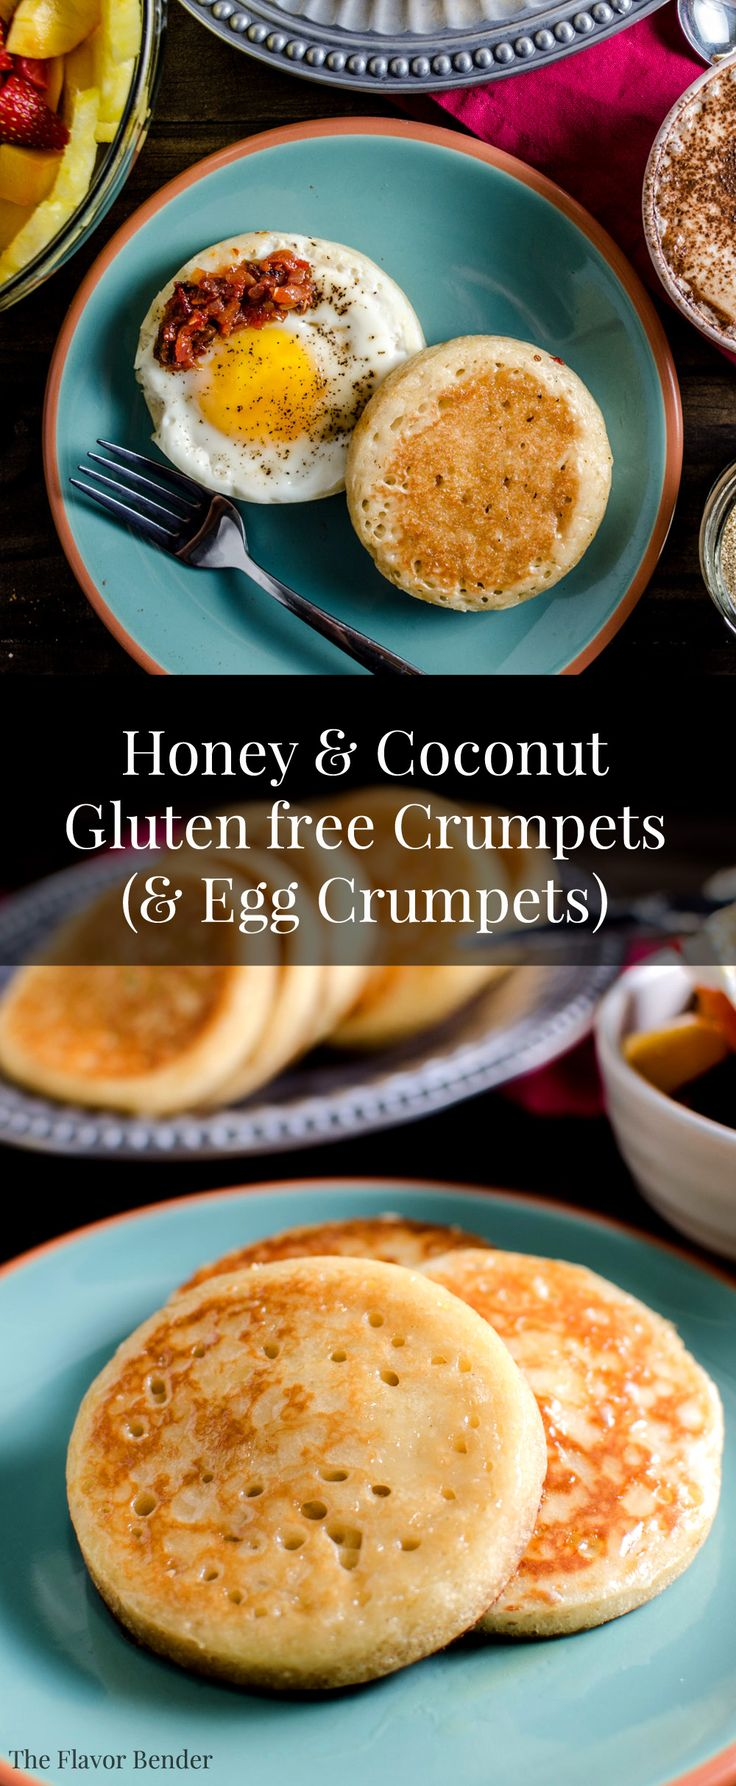 Gluten Free Coconut and Honey Crumpets with Eggs and Fruits! A perfect Spring breakfast with delicious crumpets with Eggs cooked right in! Lazy mornings with the ultimate crumpets and flavoured with #DominoHoneyGranules  #ad  @realdominosugar. Pin for later, or Click for the recipe.